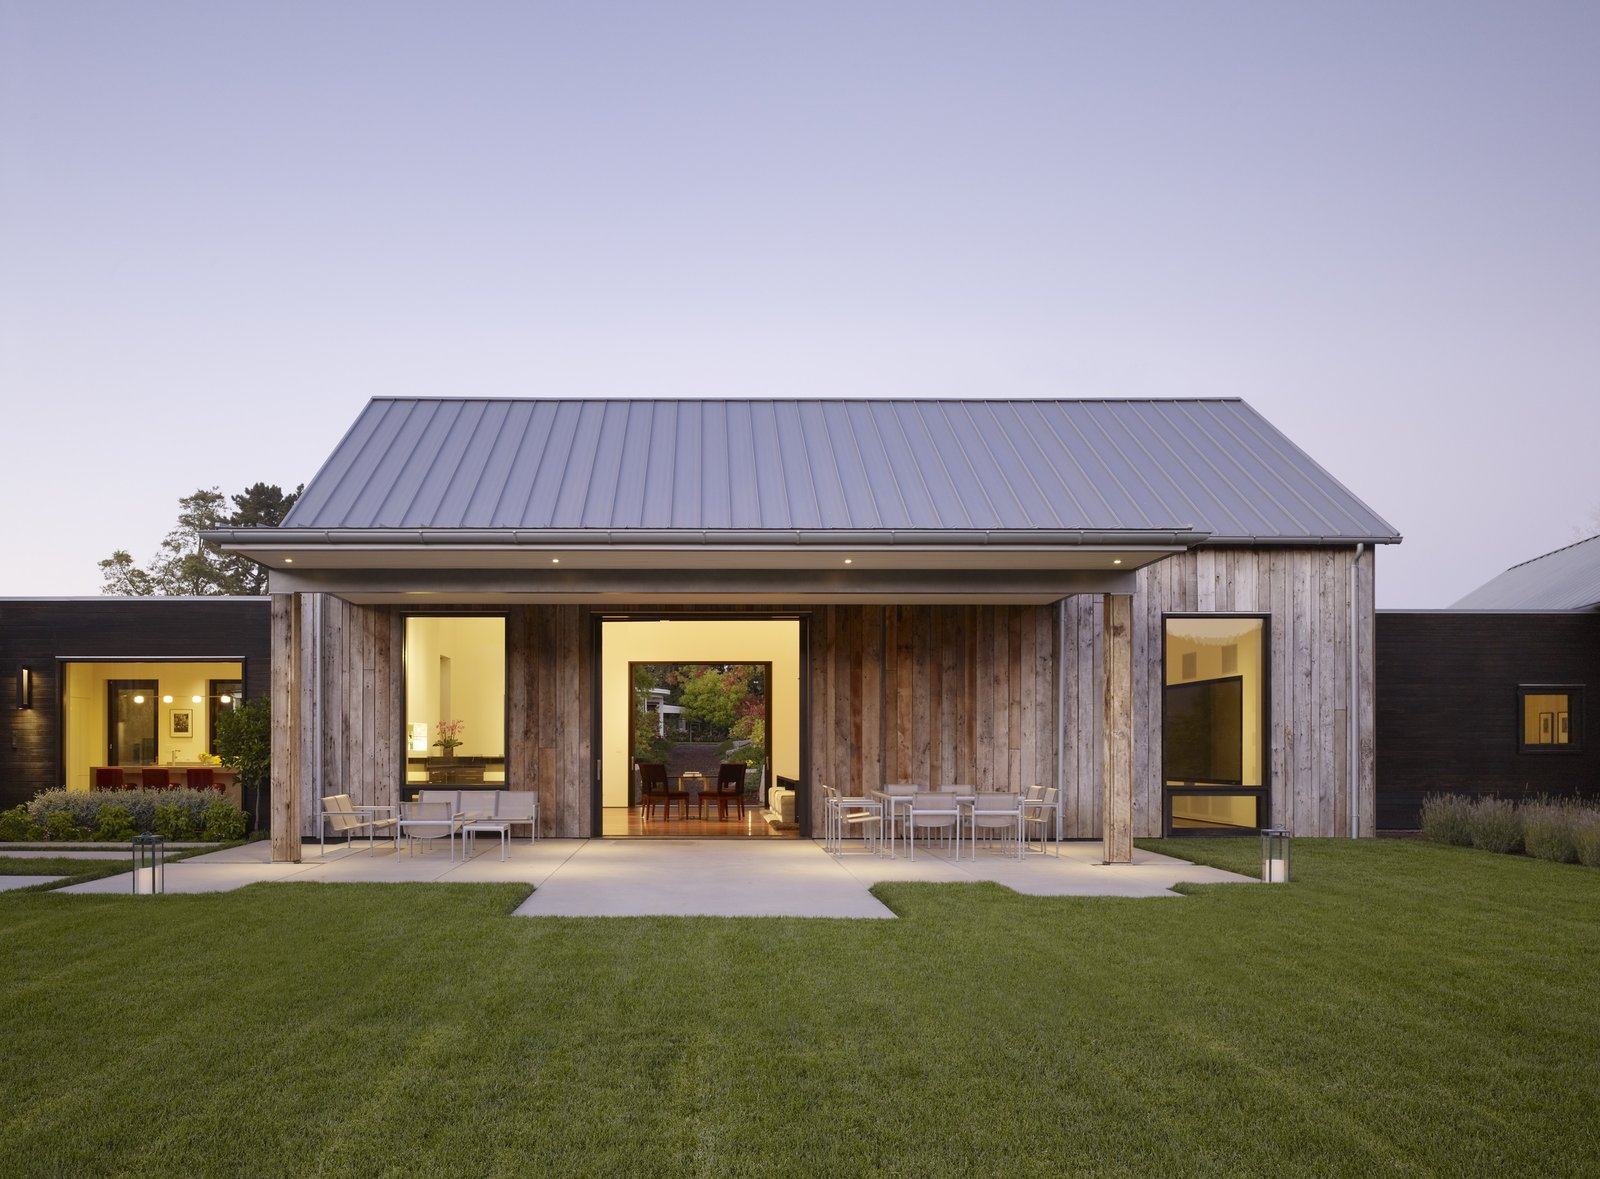 This Barn-Like Oasis Nails Rustic Modern Living